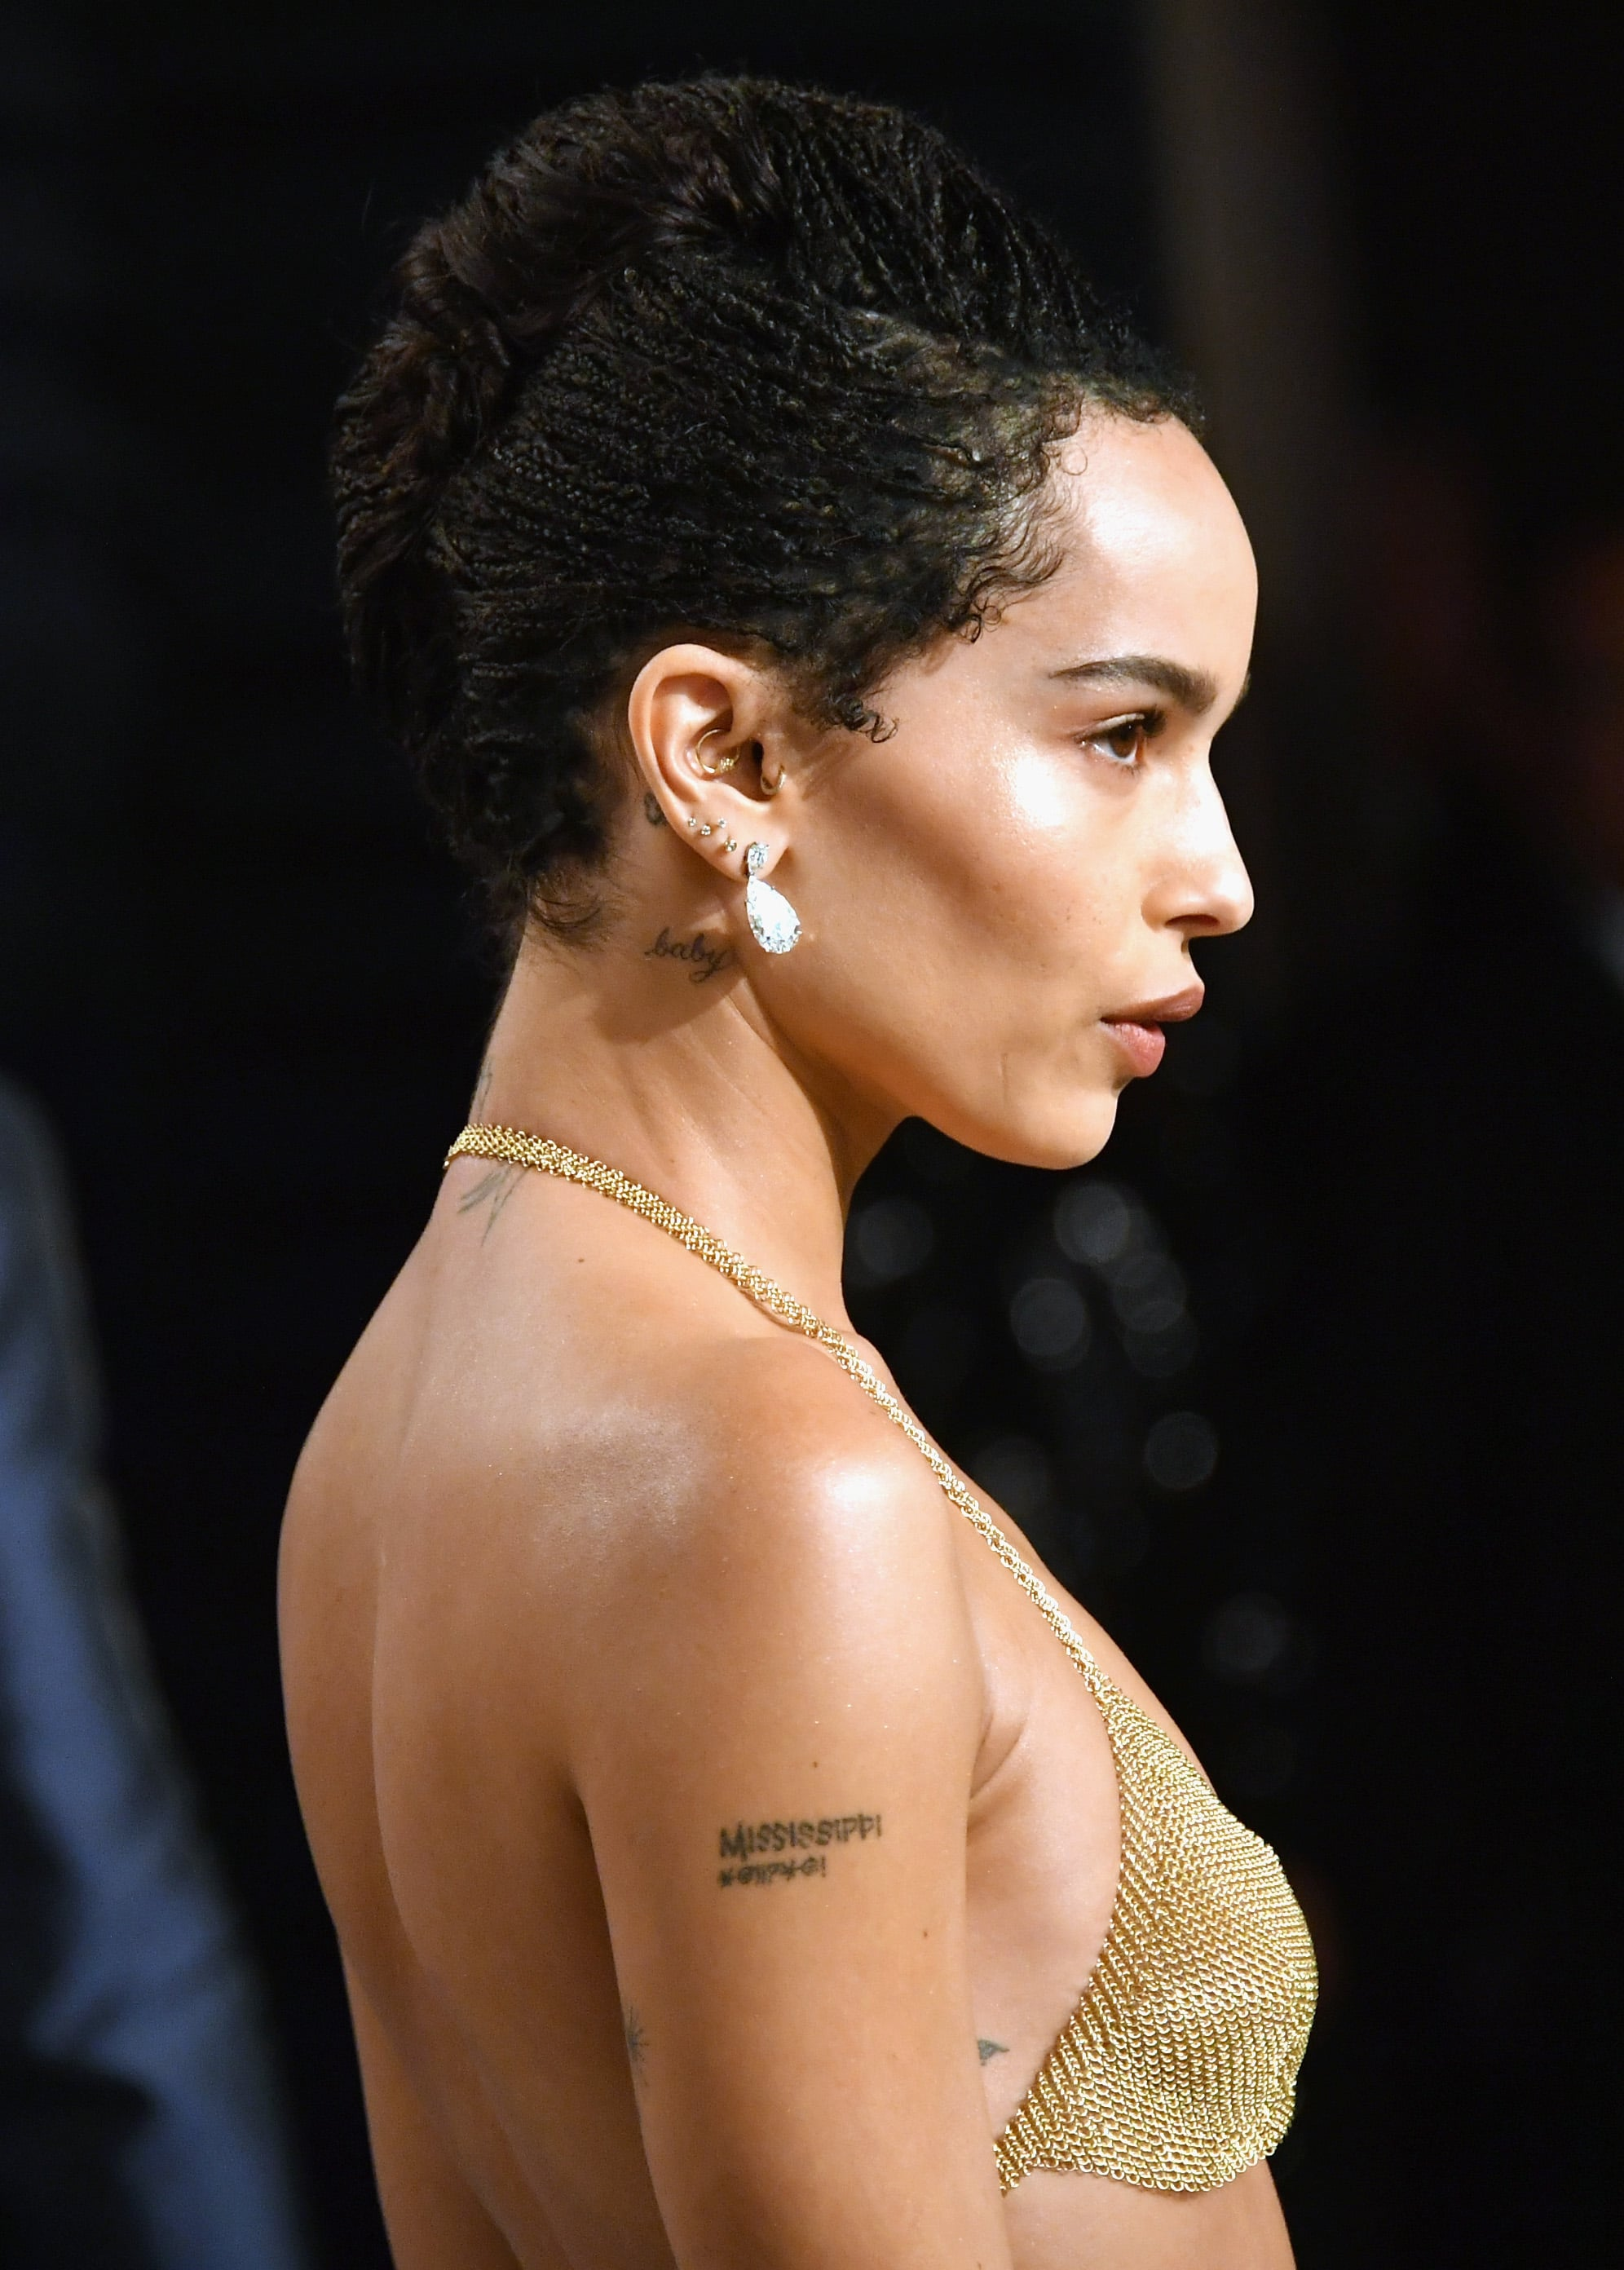 Zoe Kravitz S Braided French Twist 25 Holiday Party Hairstyles For Every Texture And Length Popsugar Beauty Photo 6